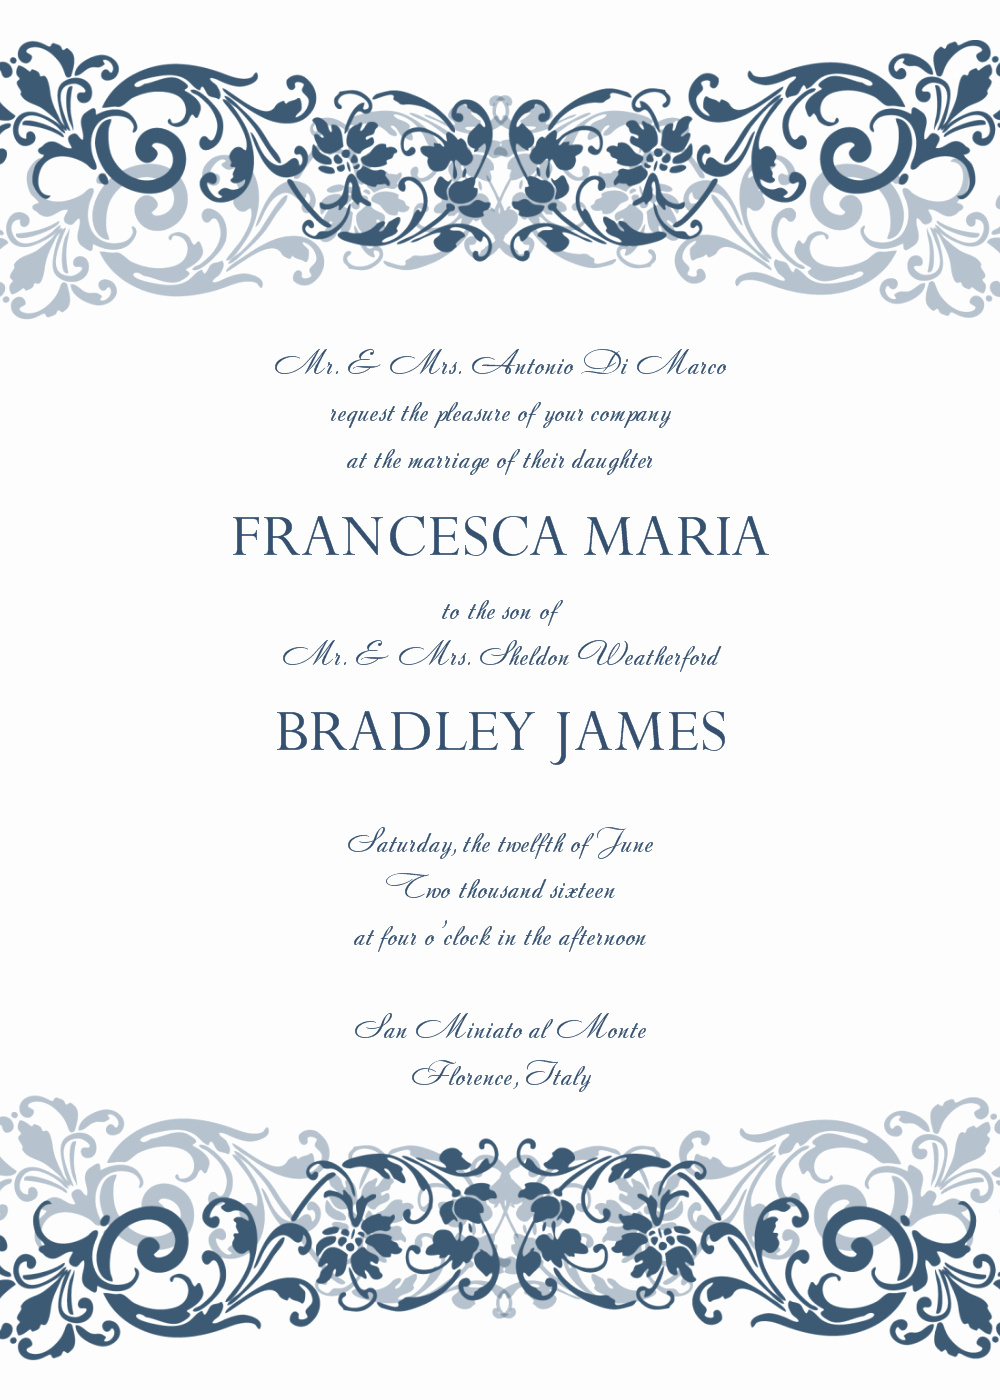 Wedding Invitation Templates Free New 8 Free Wedding Invitation Templates Excel Pdf formats